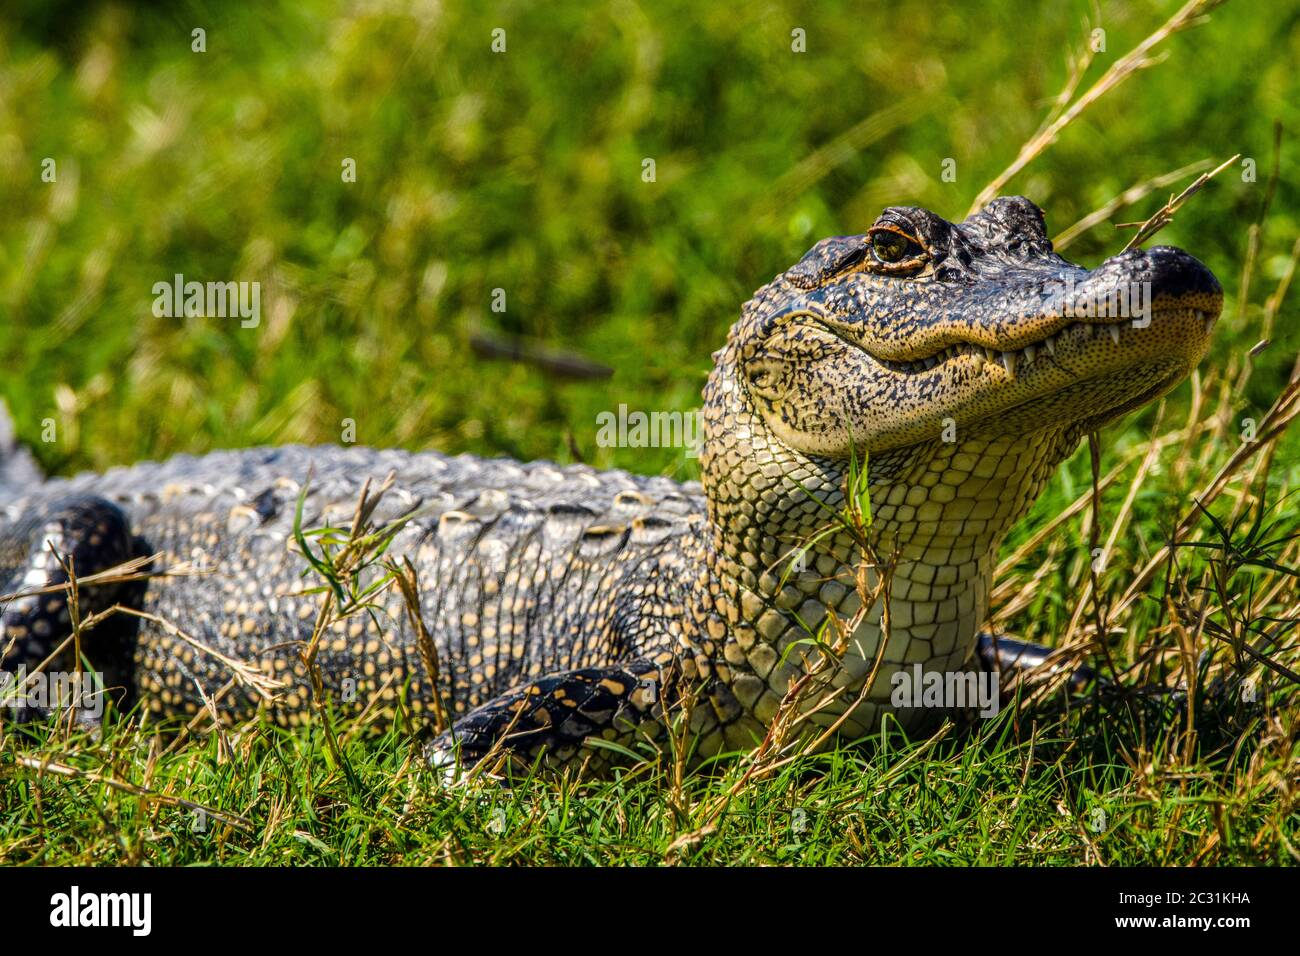 Basking alligator (Alligator mississipiensis), Cameron Prairie National Wildlife Refuge, Louisiana, USA Stock Photo